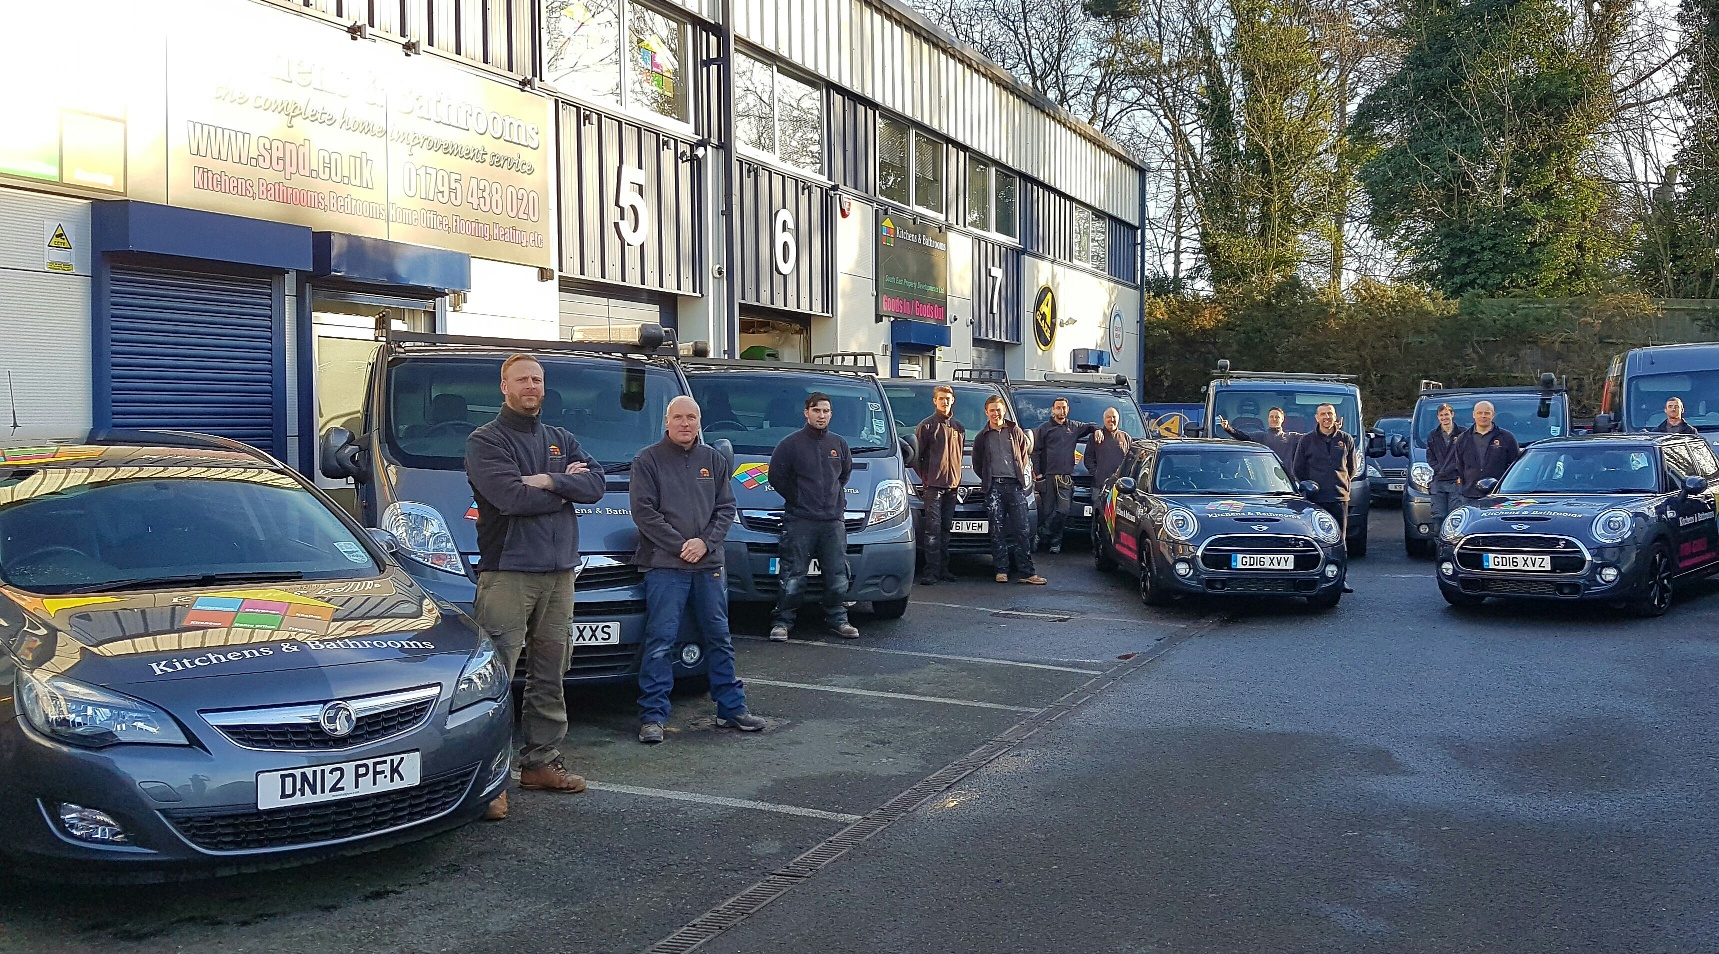 Kitchens & Bathrooms group photo with company vehicles.